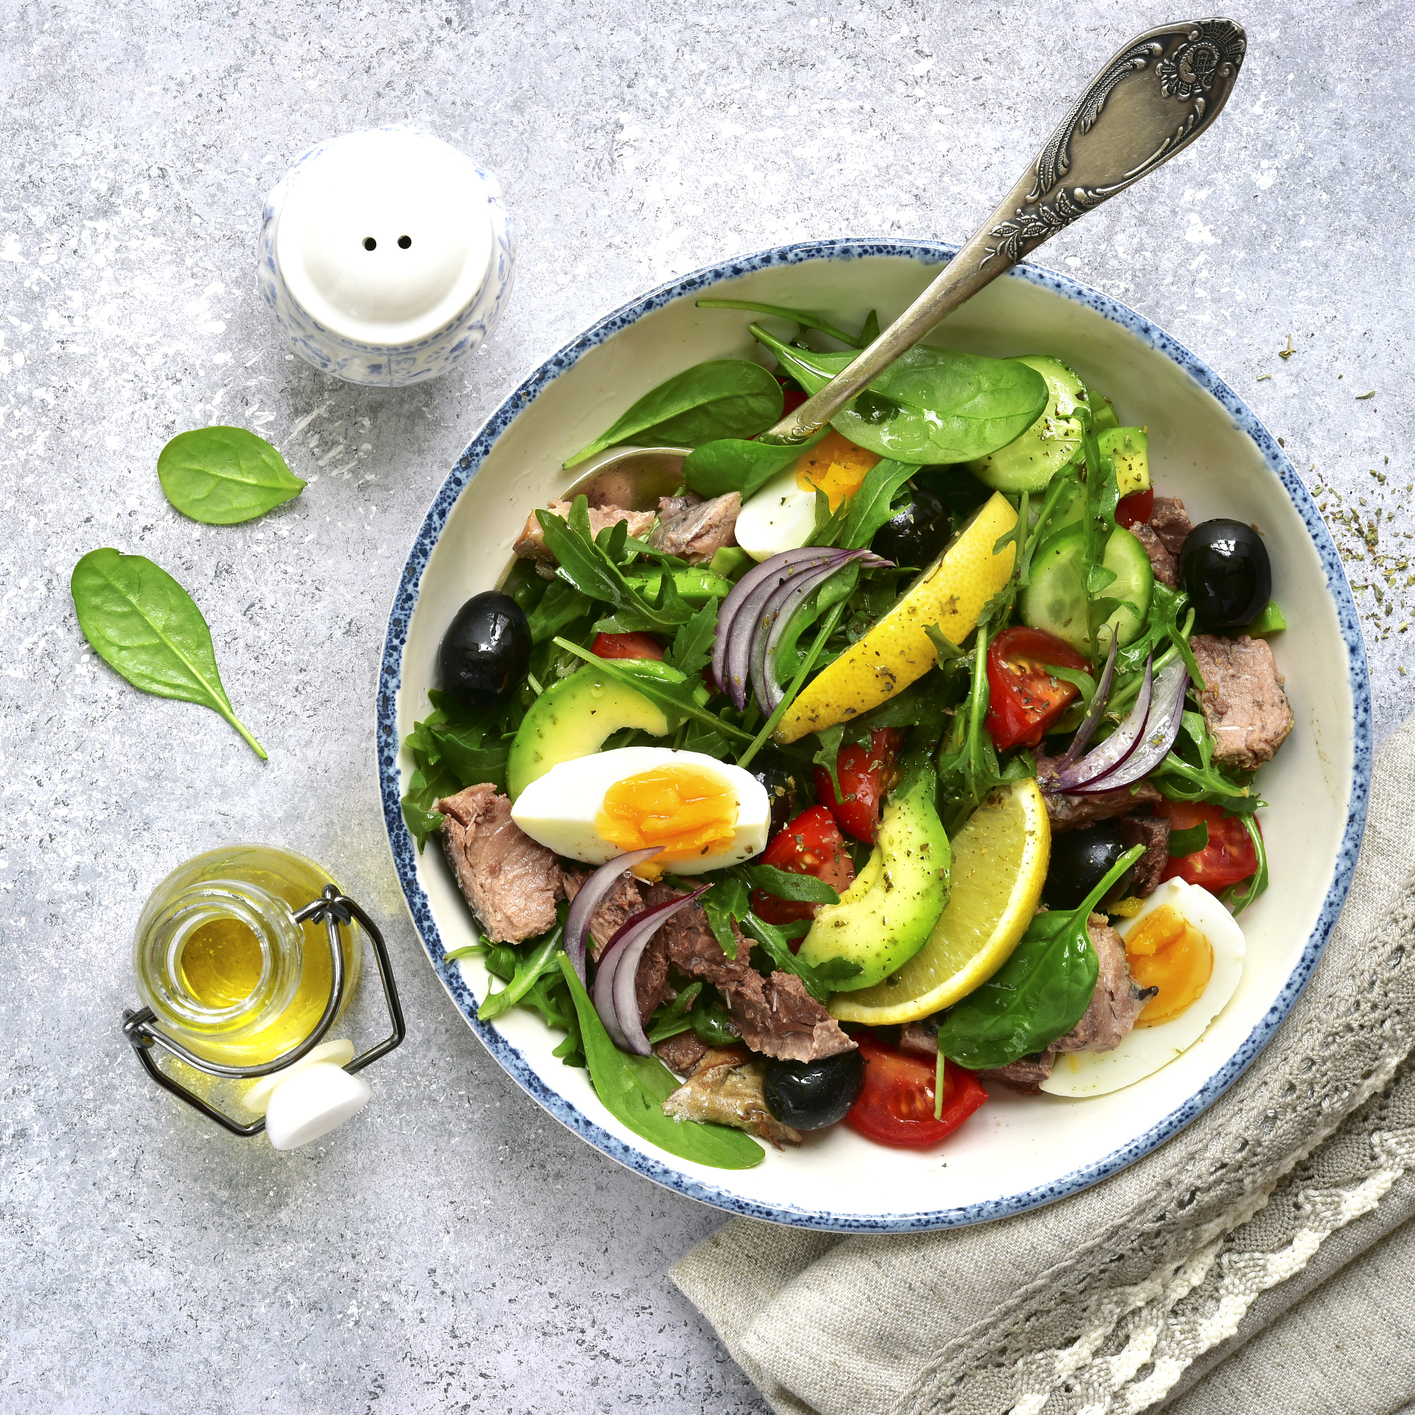 Tuna salad with mix salad leaves (spinach and arugula) , avocado, cherry tomato, cucumber and egg